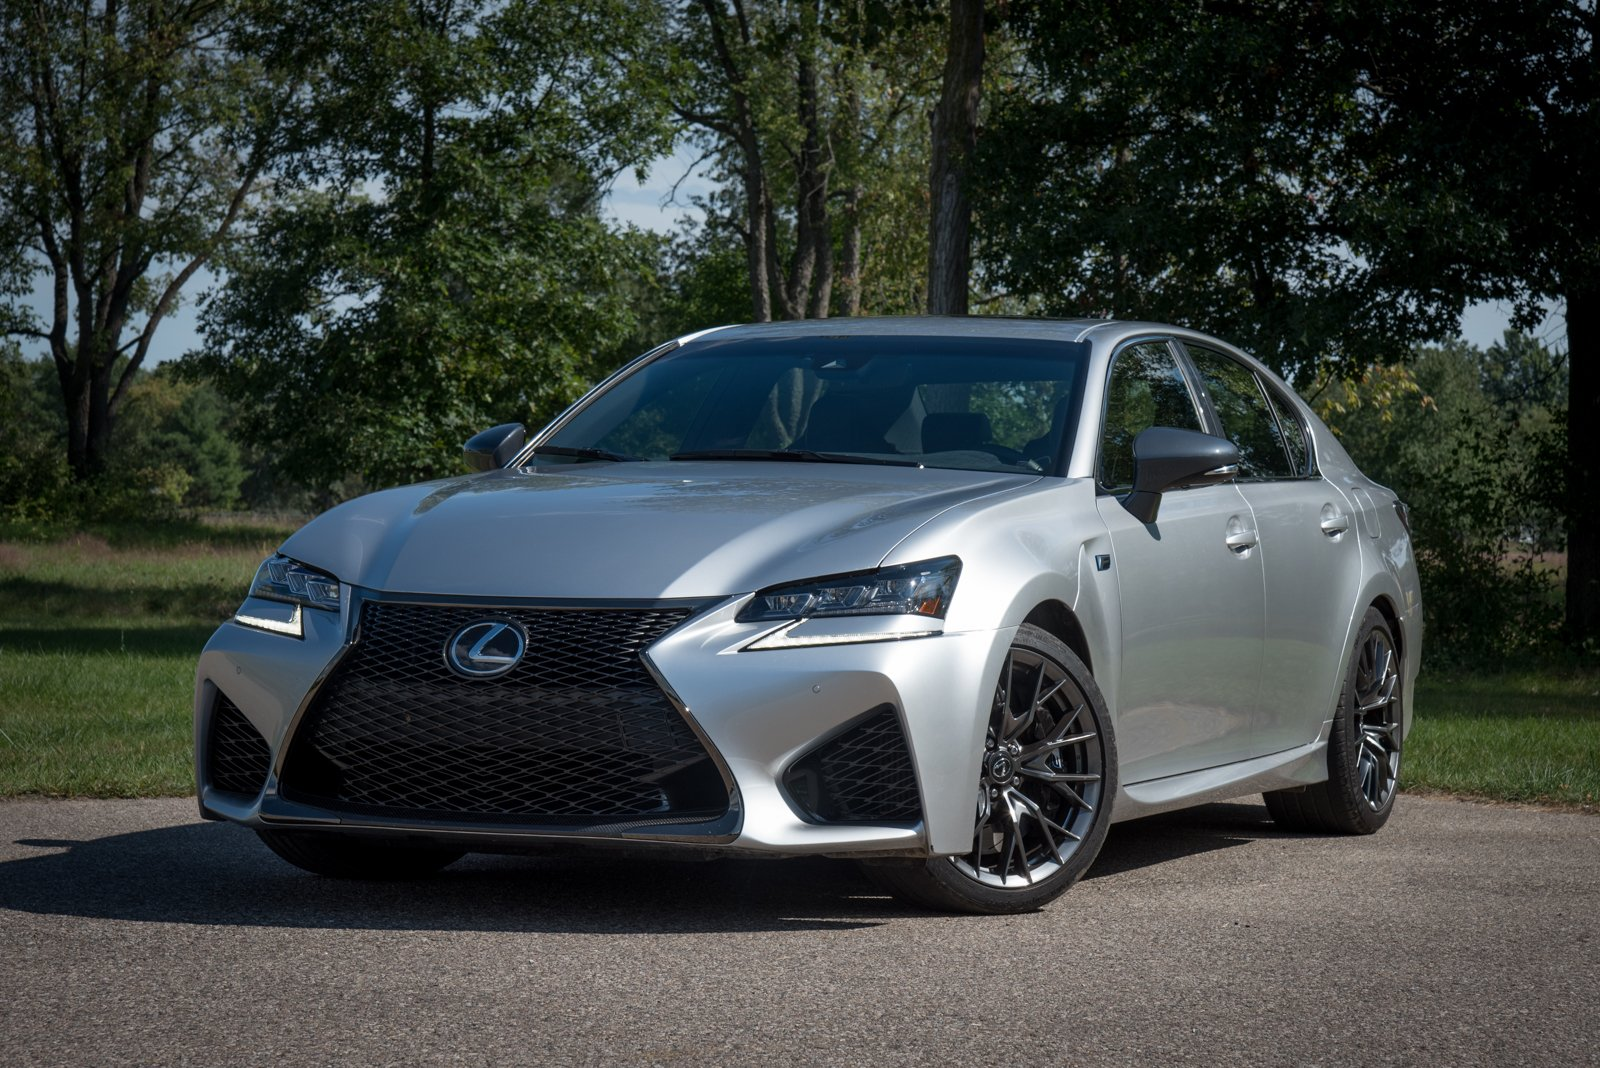 2018 Cts V >> 9 Things to Know About the Lexus GS F (Plus a 360 Video ...